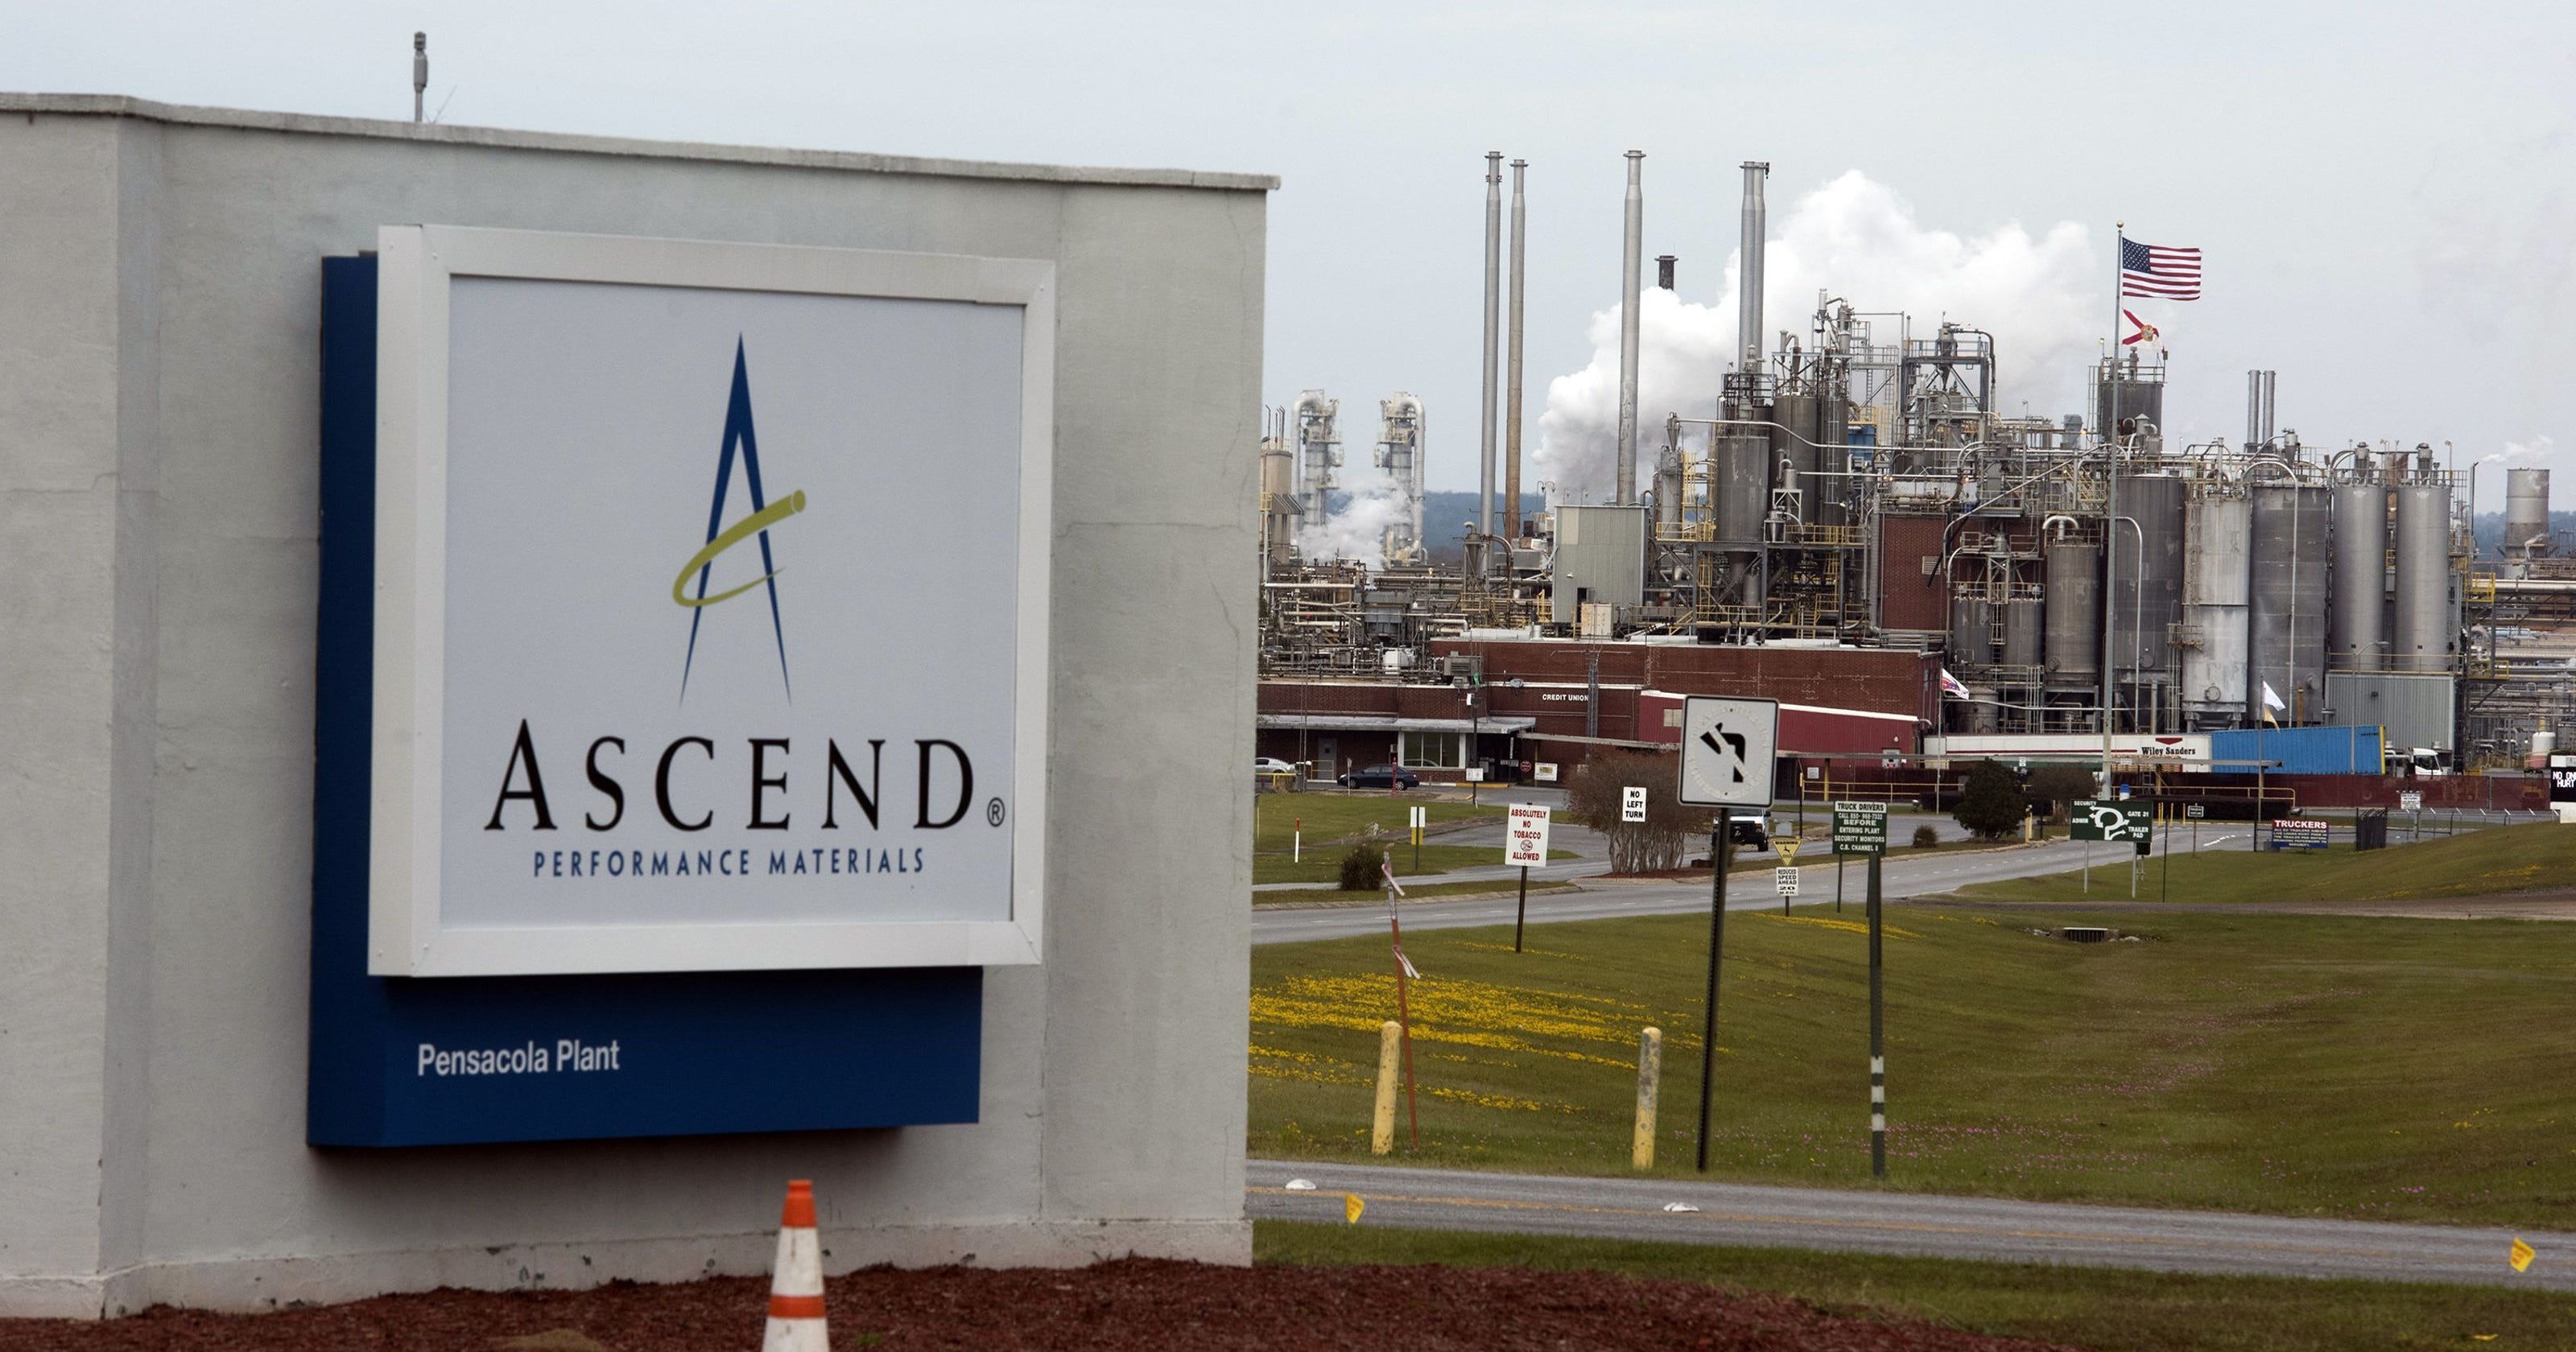 Ascend Building Image